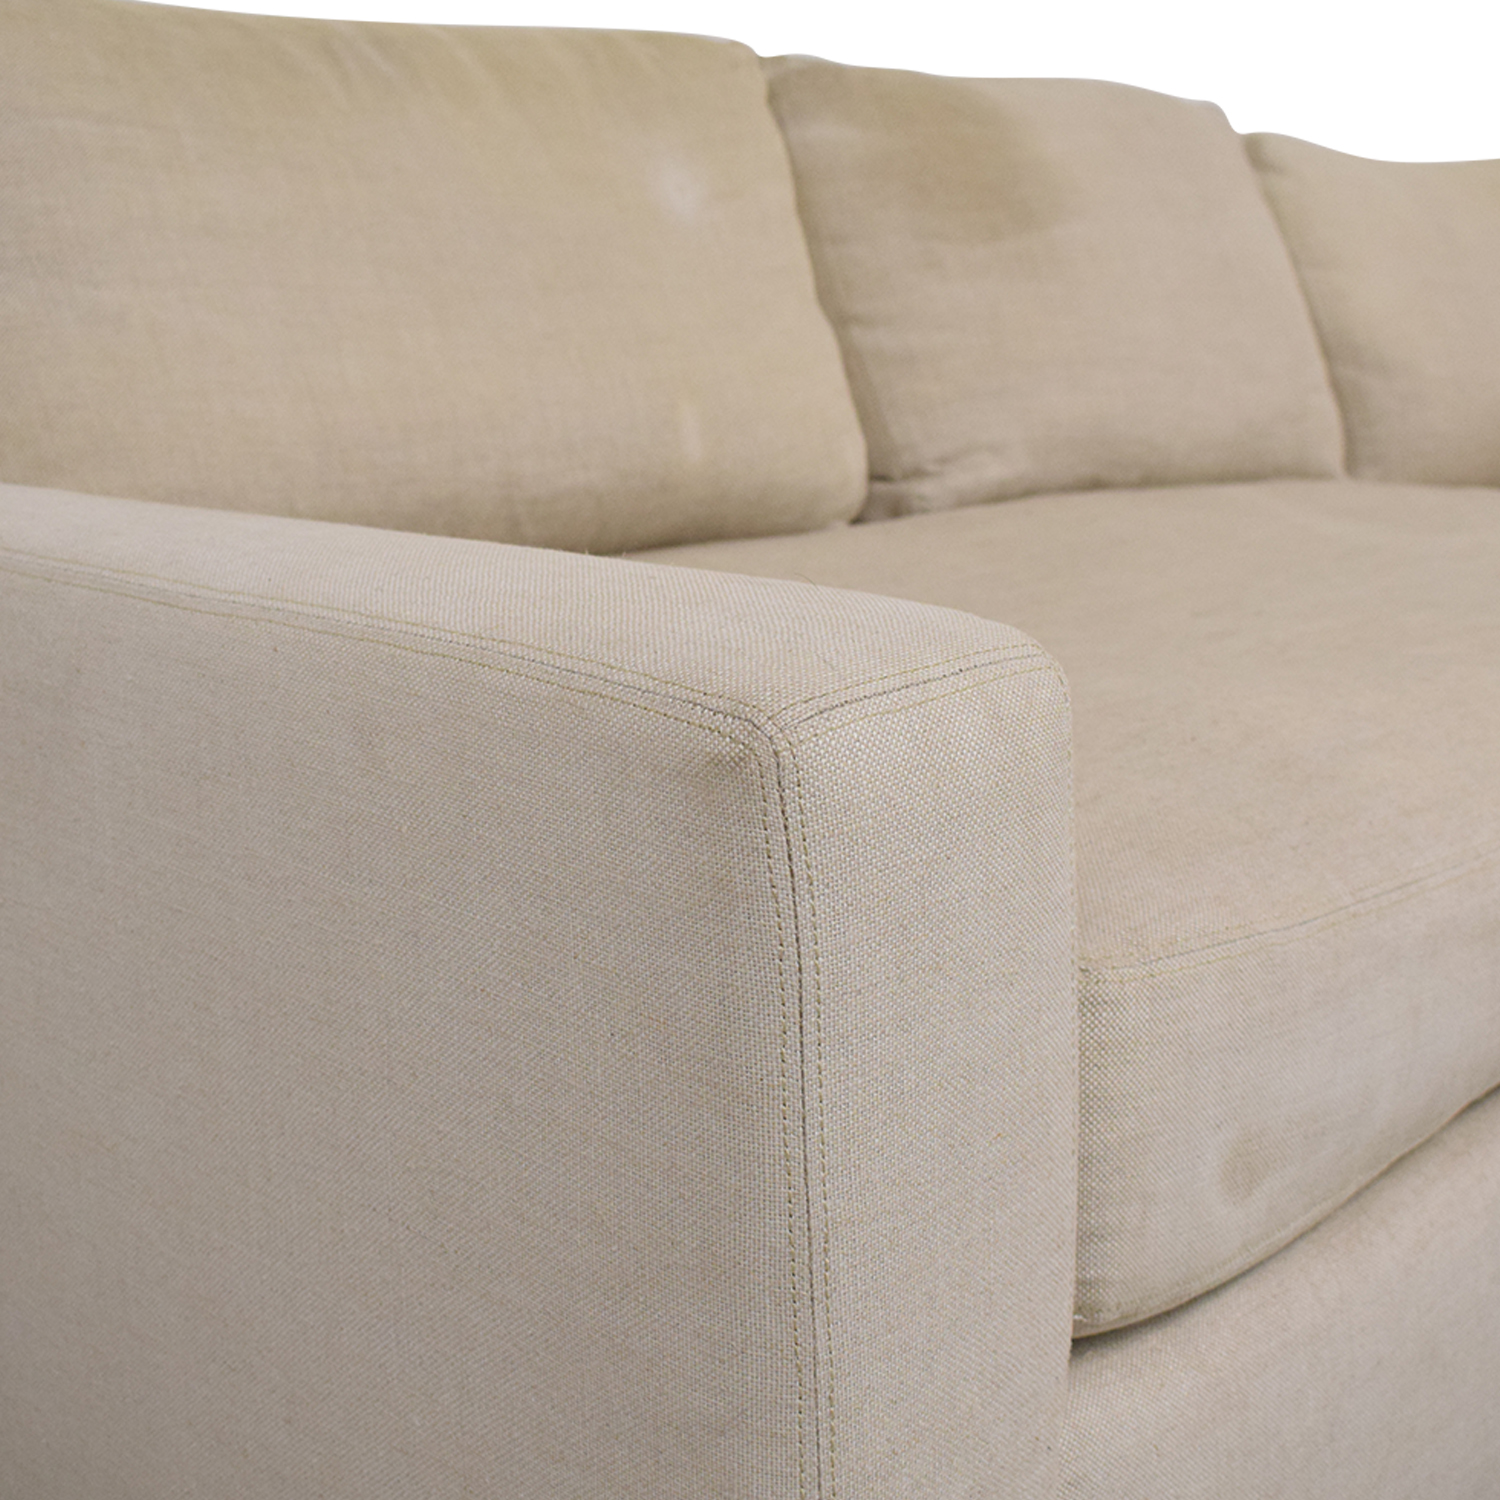 Restoration Hardware Restoration Hardware Maxwell Chaise Sectional Sofa